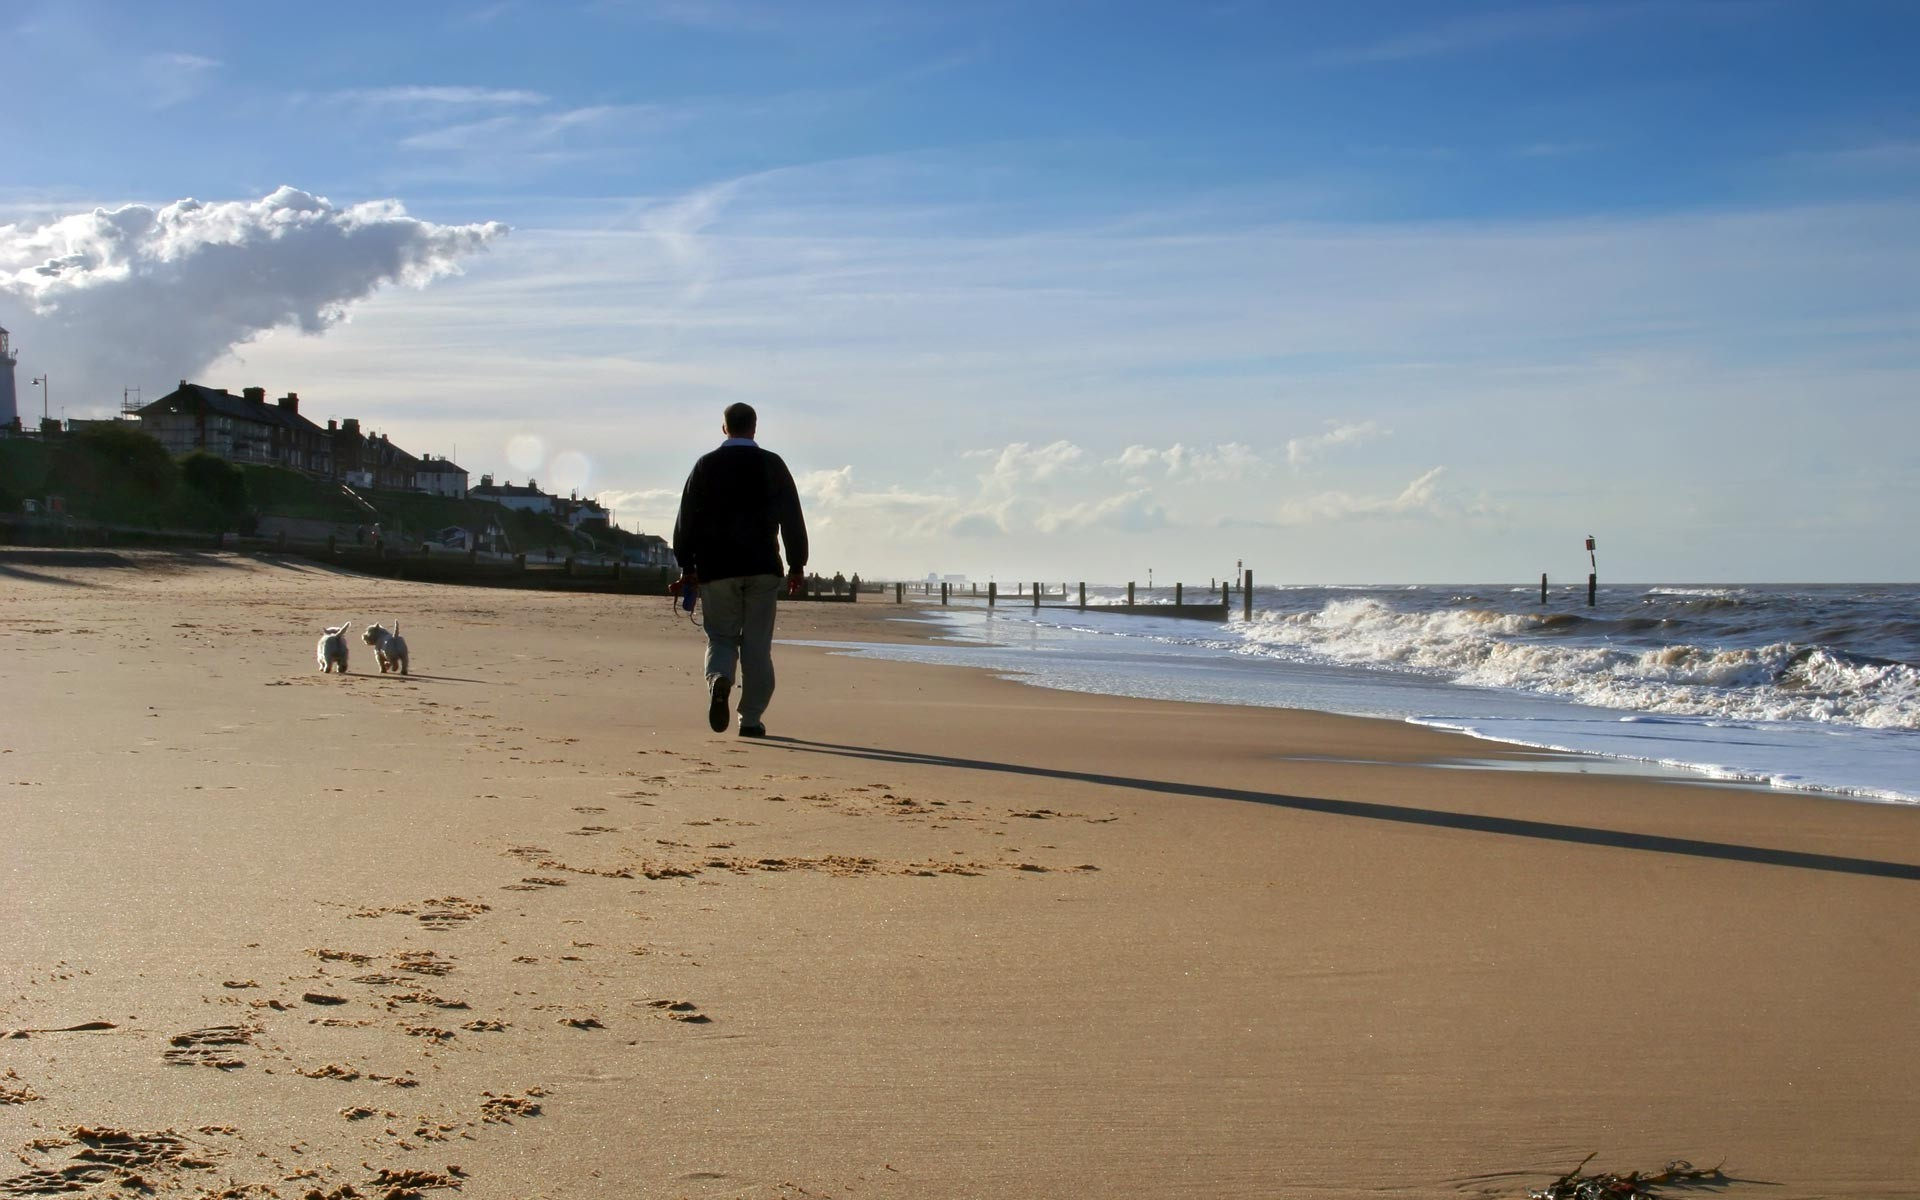 A man was walking two dogs near the sea